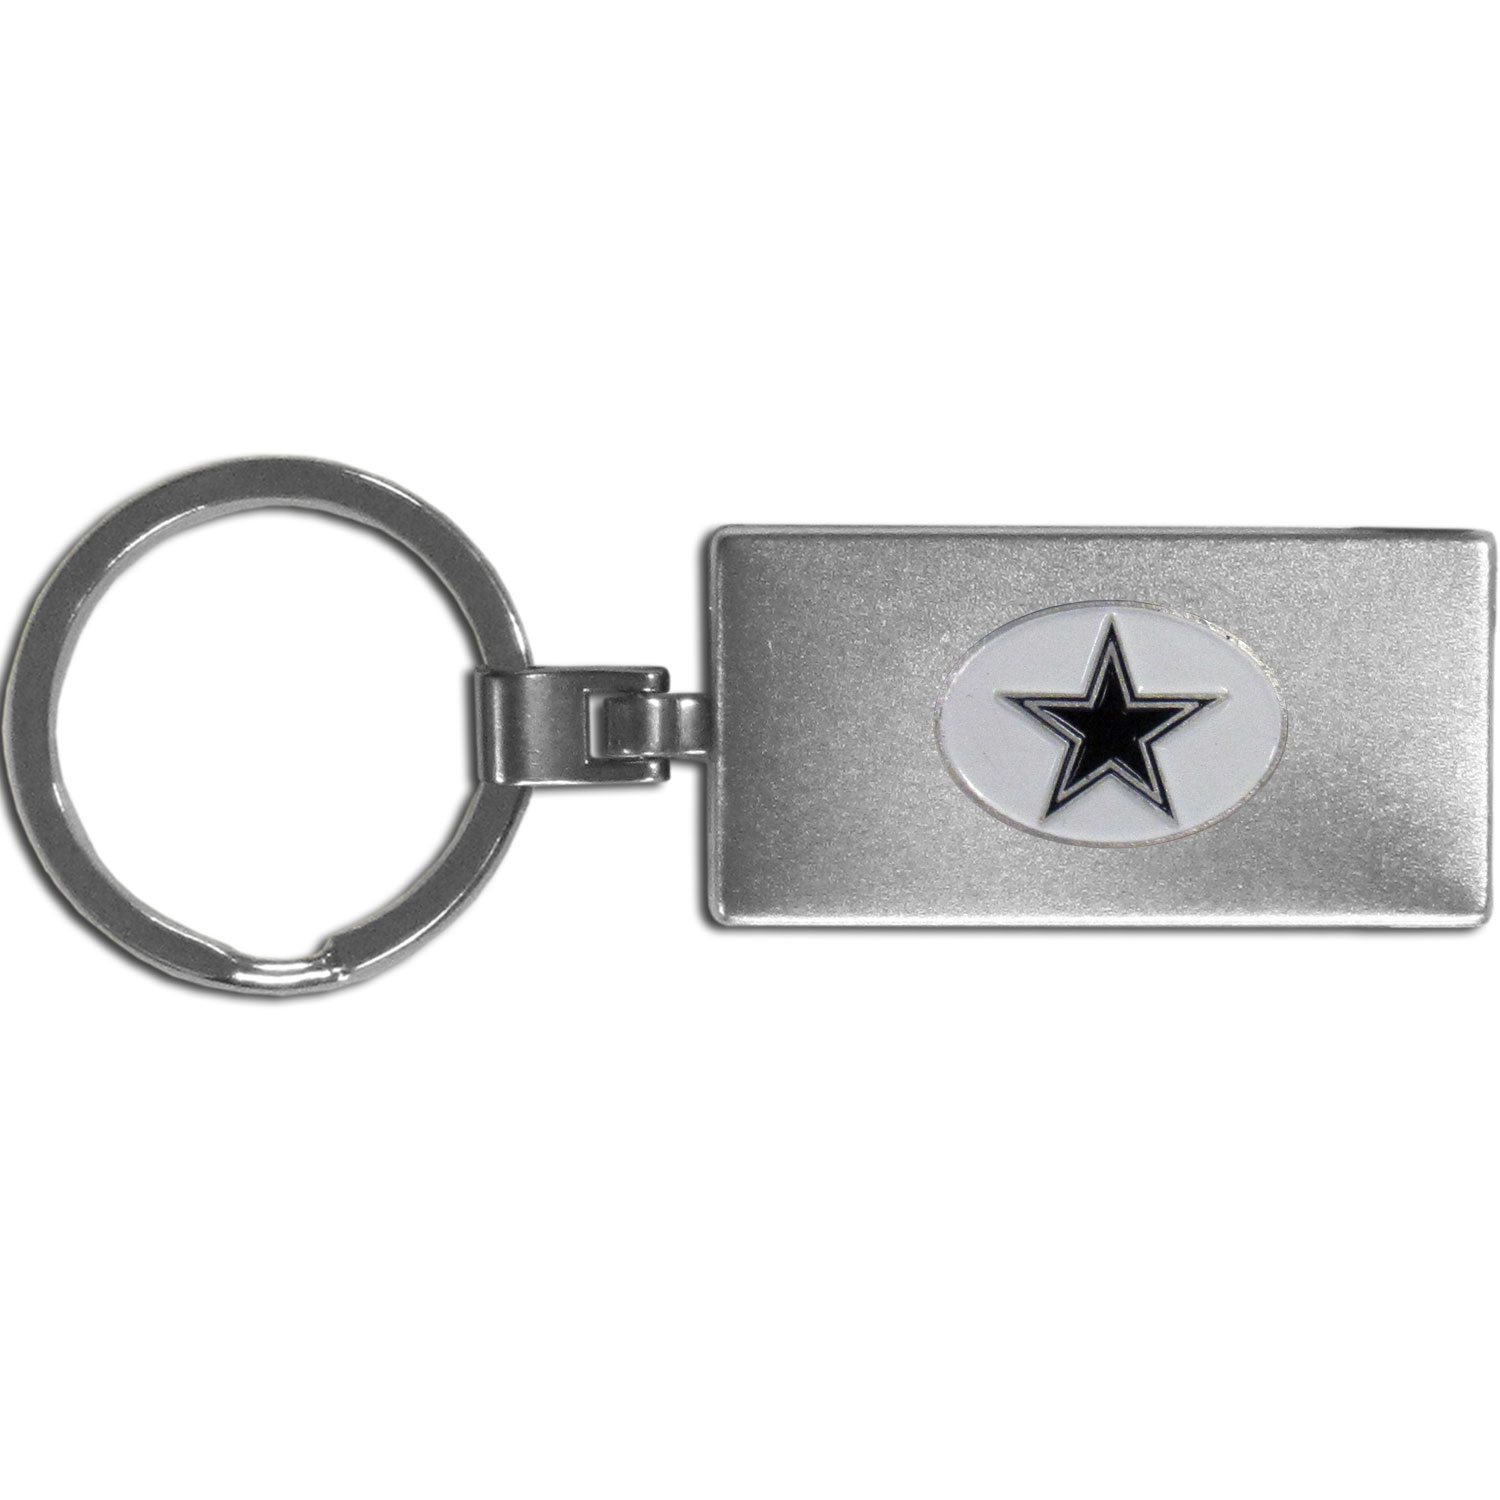 Dallas Cowboys Multi-tool Key Chain - Be the hero at the tailgate, camping, or on a Friday night with your Dallas Cowboys Multi-Tool Keychain which comes complete with bottle opener, scissors, knife, nail file and screw driver. Be it opening a package or a beverage Siskiyou's Multi-Tool Keychain goes wherever your keys do. The keychain hangs at 4 inches long when closed.